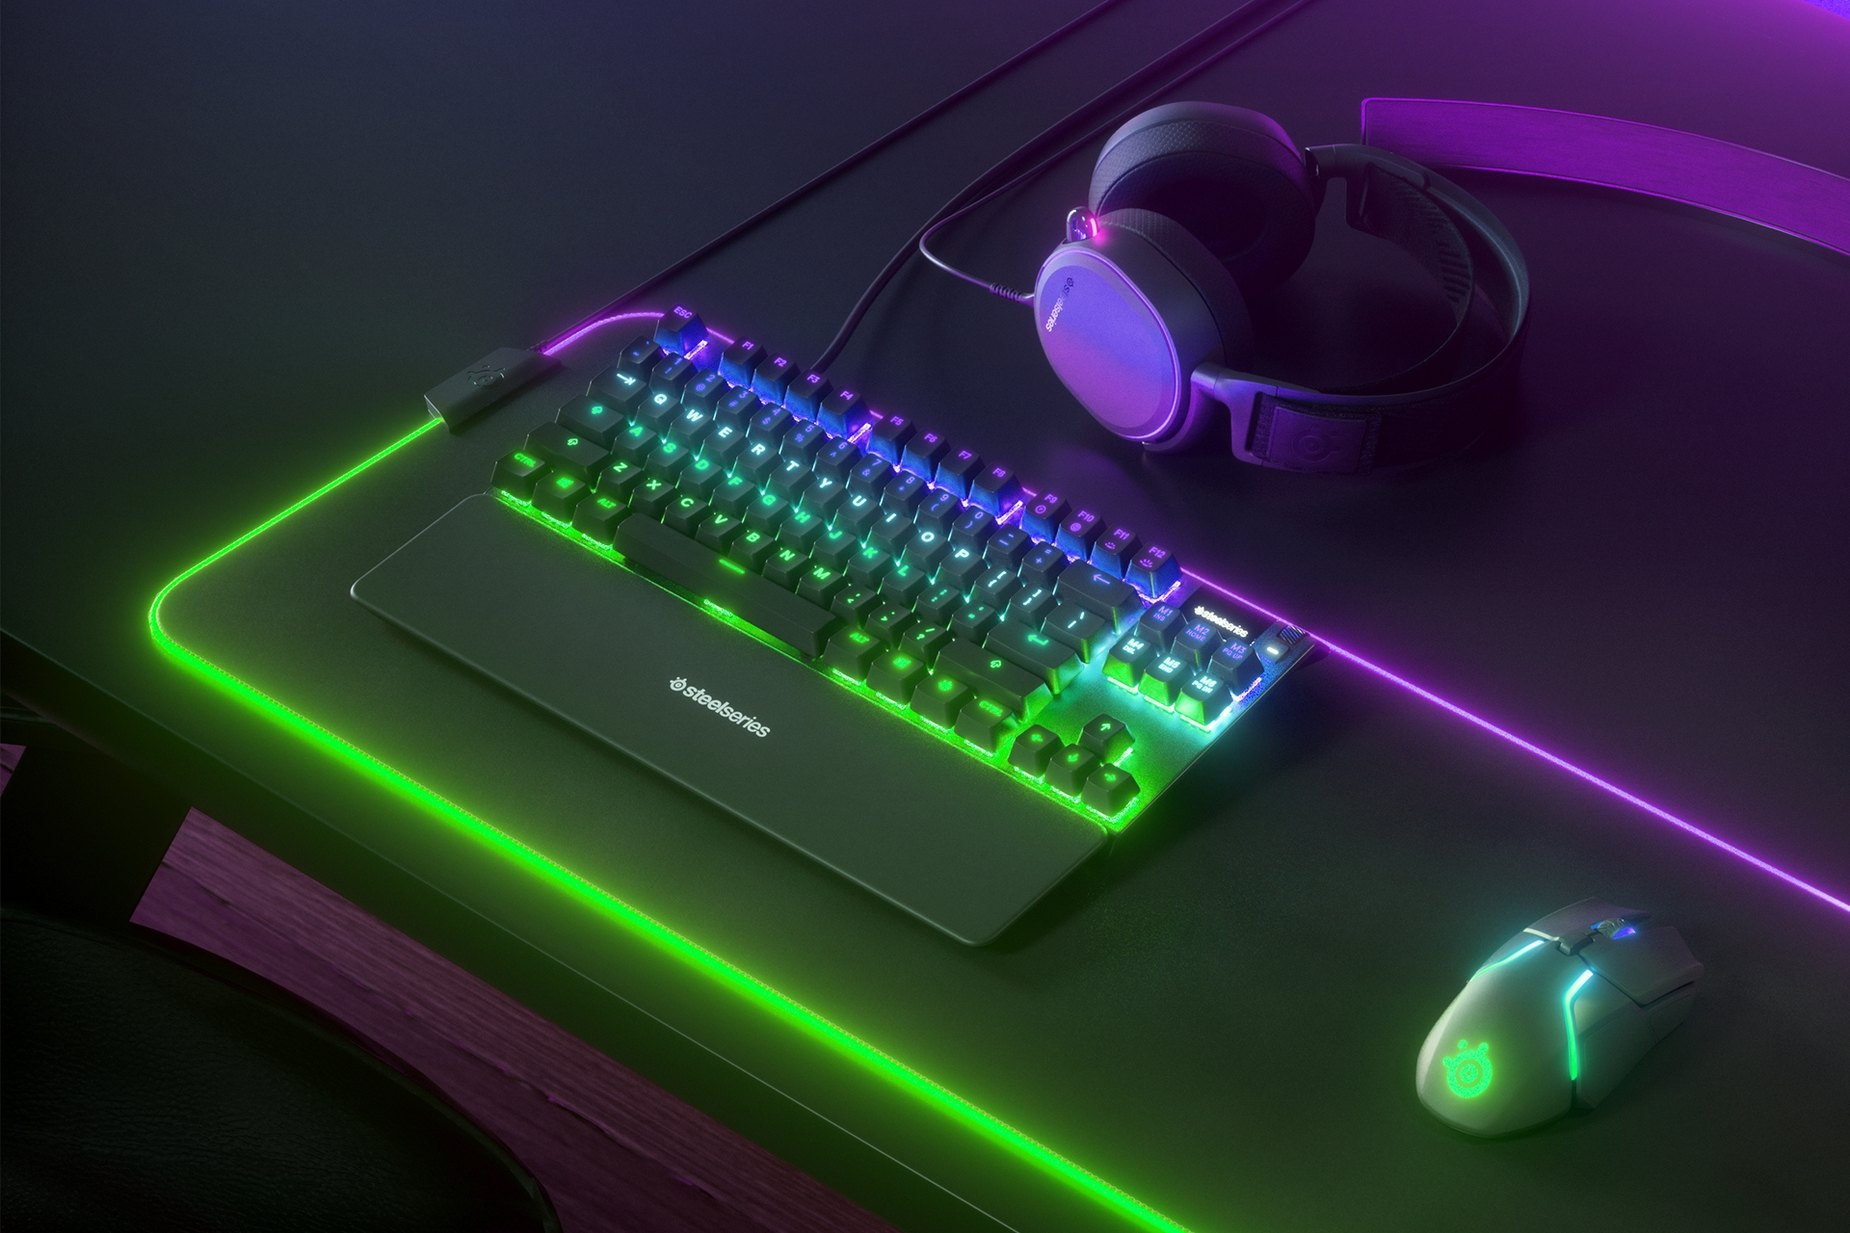 French - Apex Pro TKL gaming keyboard on a desk with a gaming mouse, both on top of a large mousepad and a SteelSeries gaming headset next to them